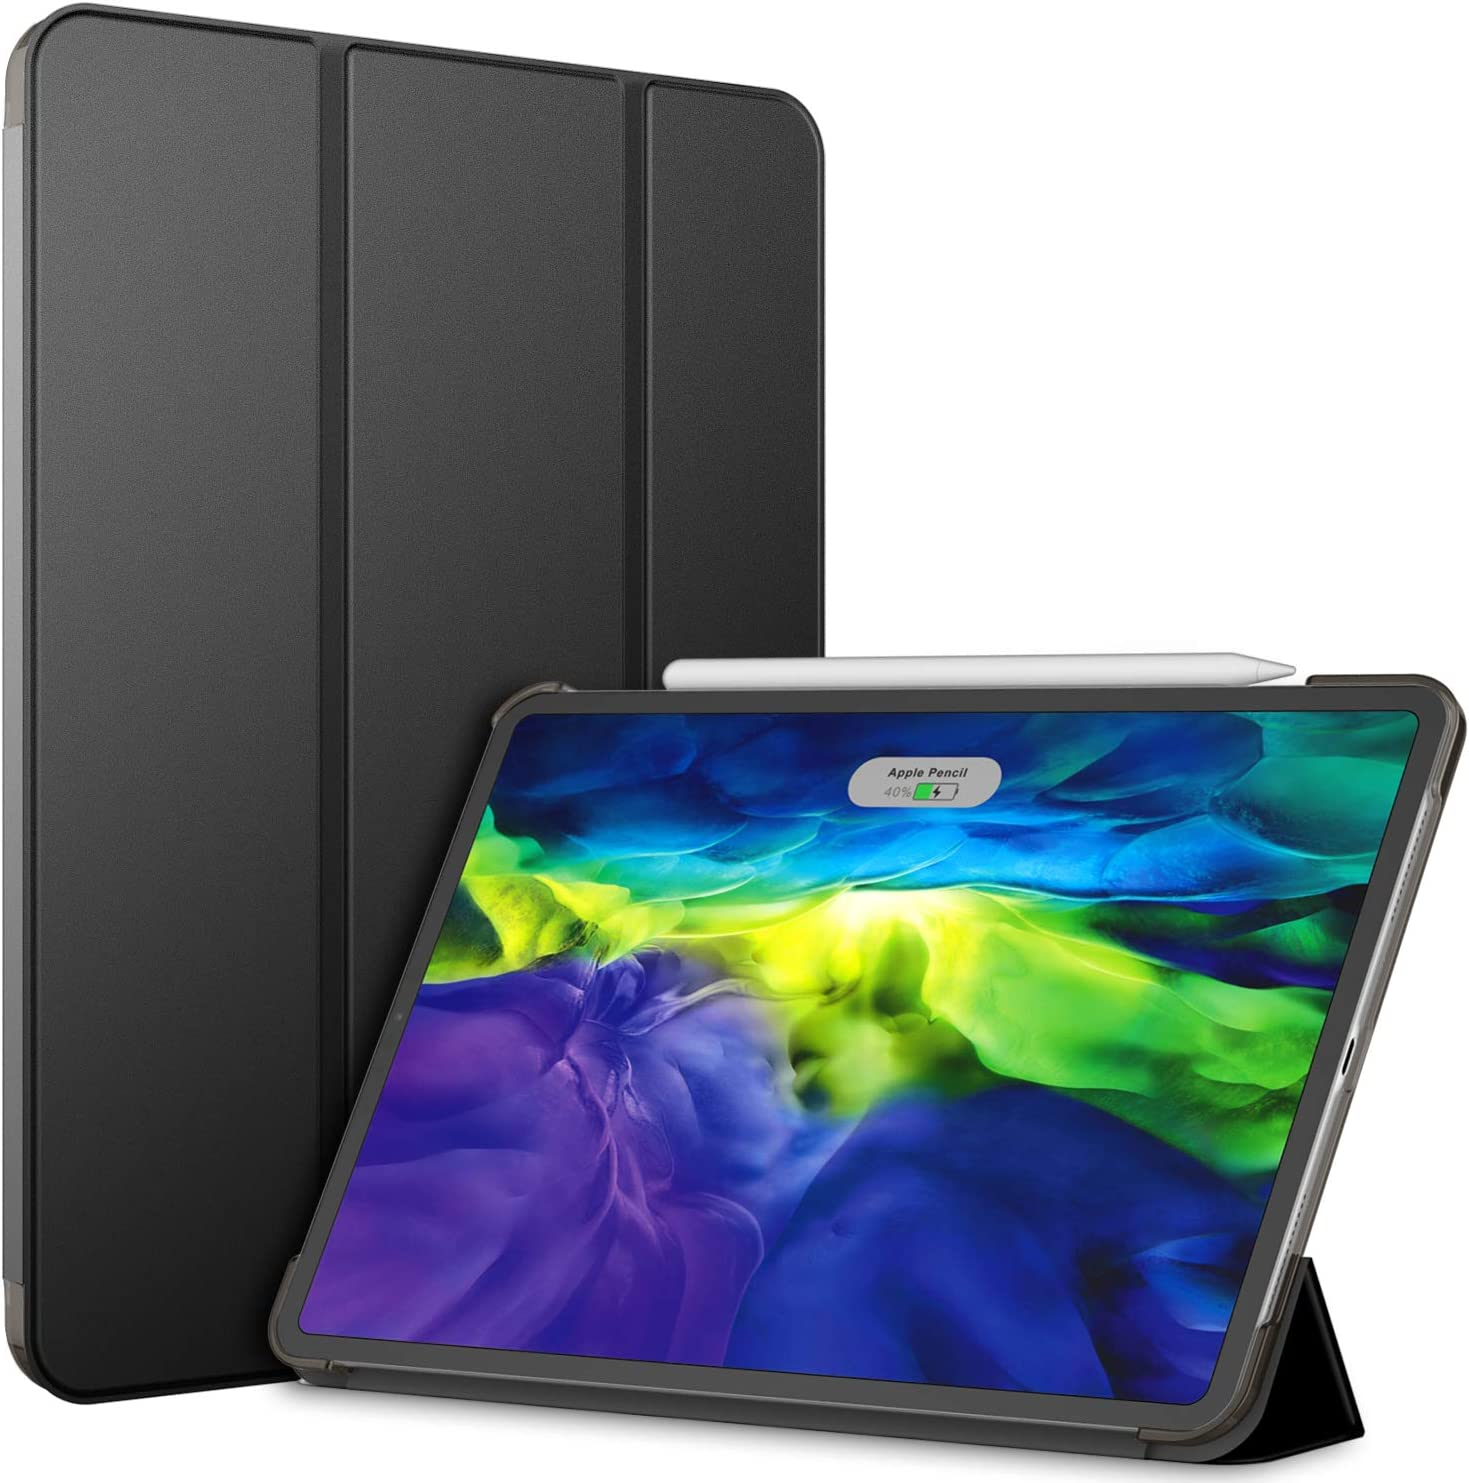 JETech Case for iPad Pro 11 Inch (2nd Generation, 2020 Model), Compatible with Pencil, Cover Auto Wake/Sleep, Black